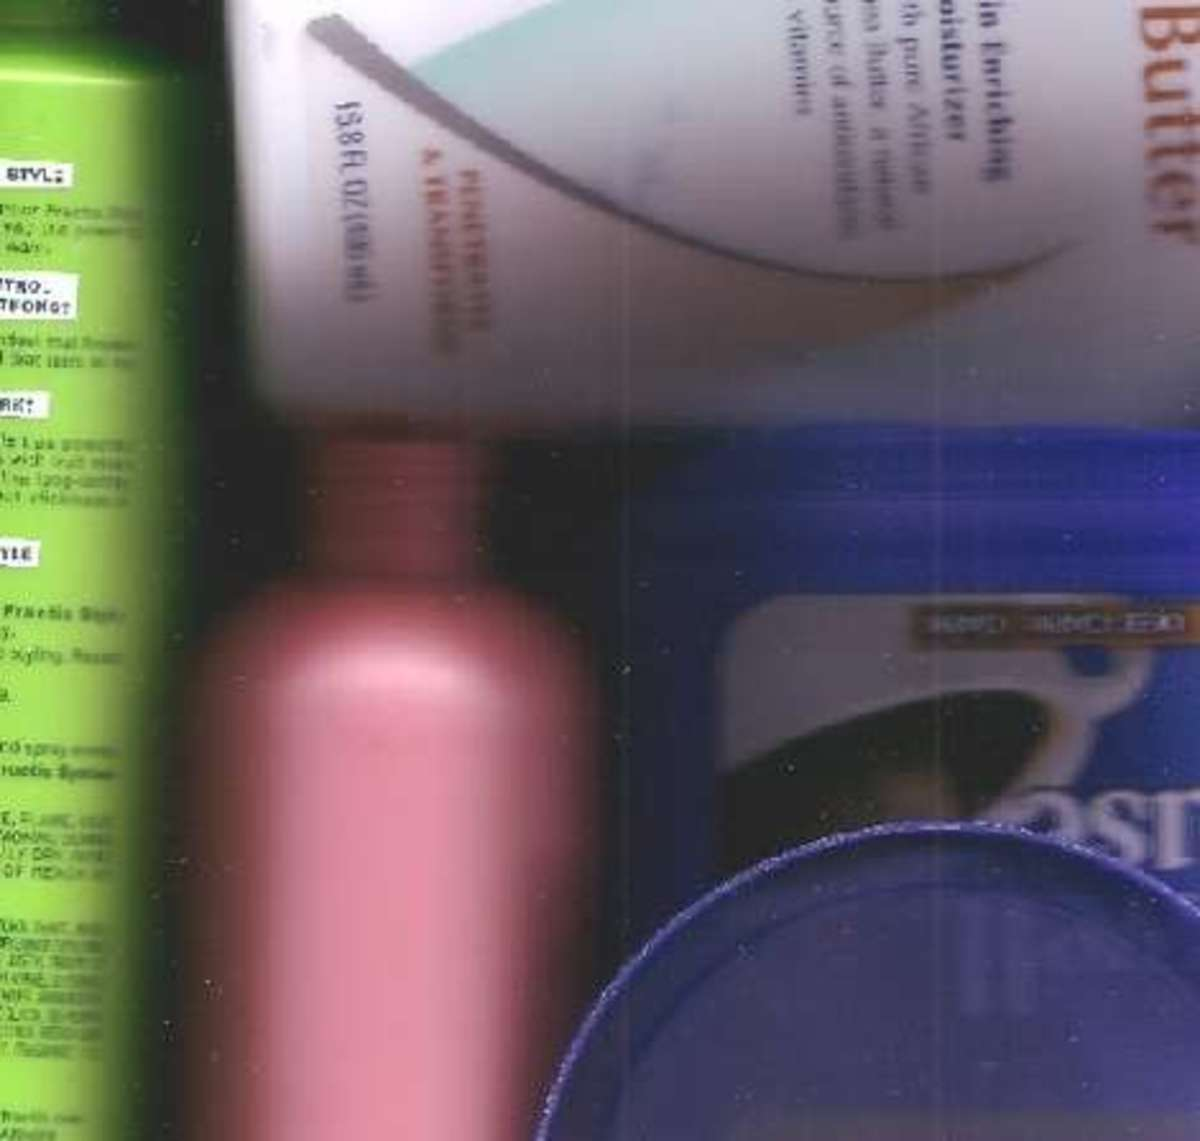 Lotions, shampoo, cleaning supplies, all come in beautiful plastic containers perfect for upcycling into jewelry.